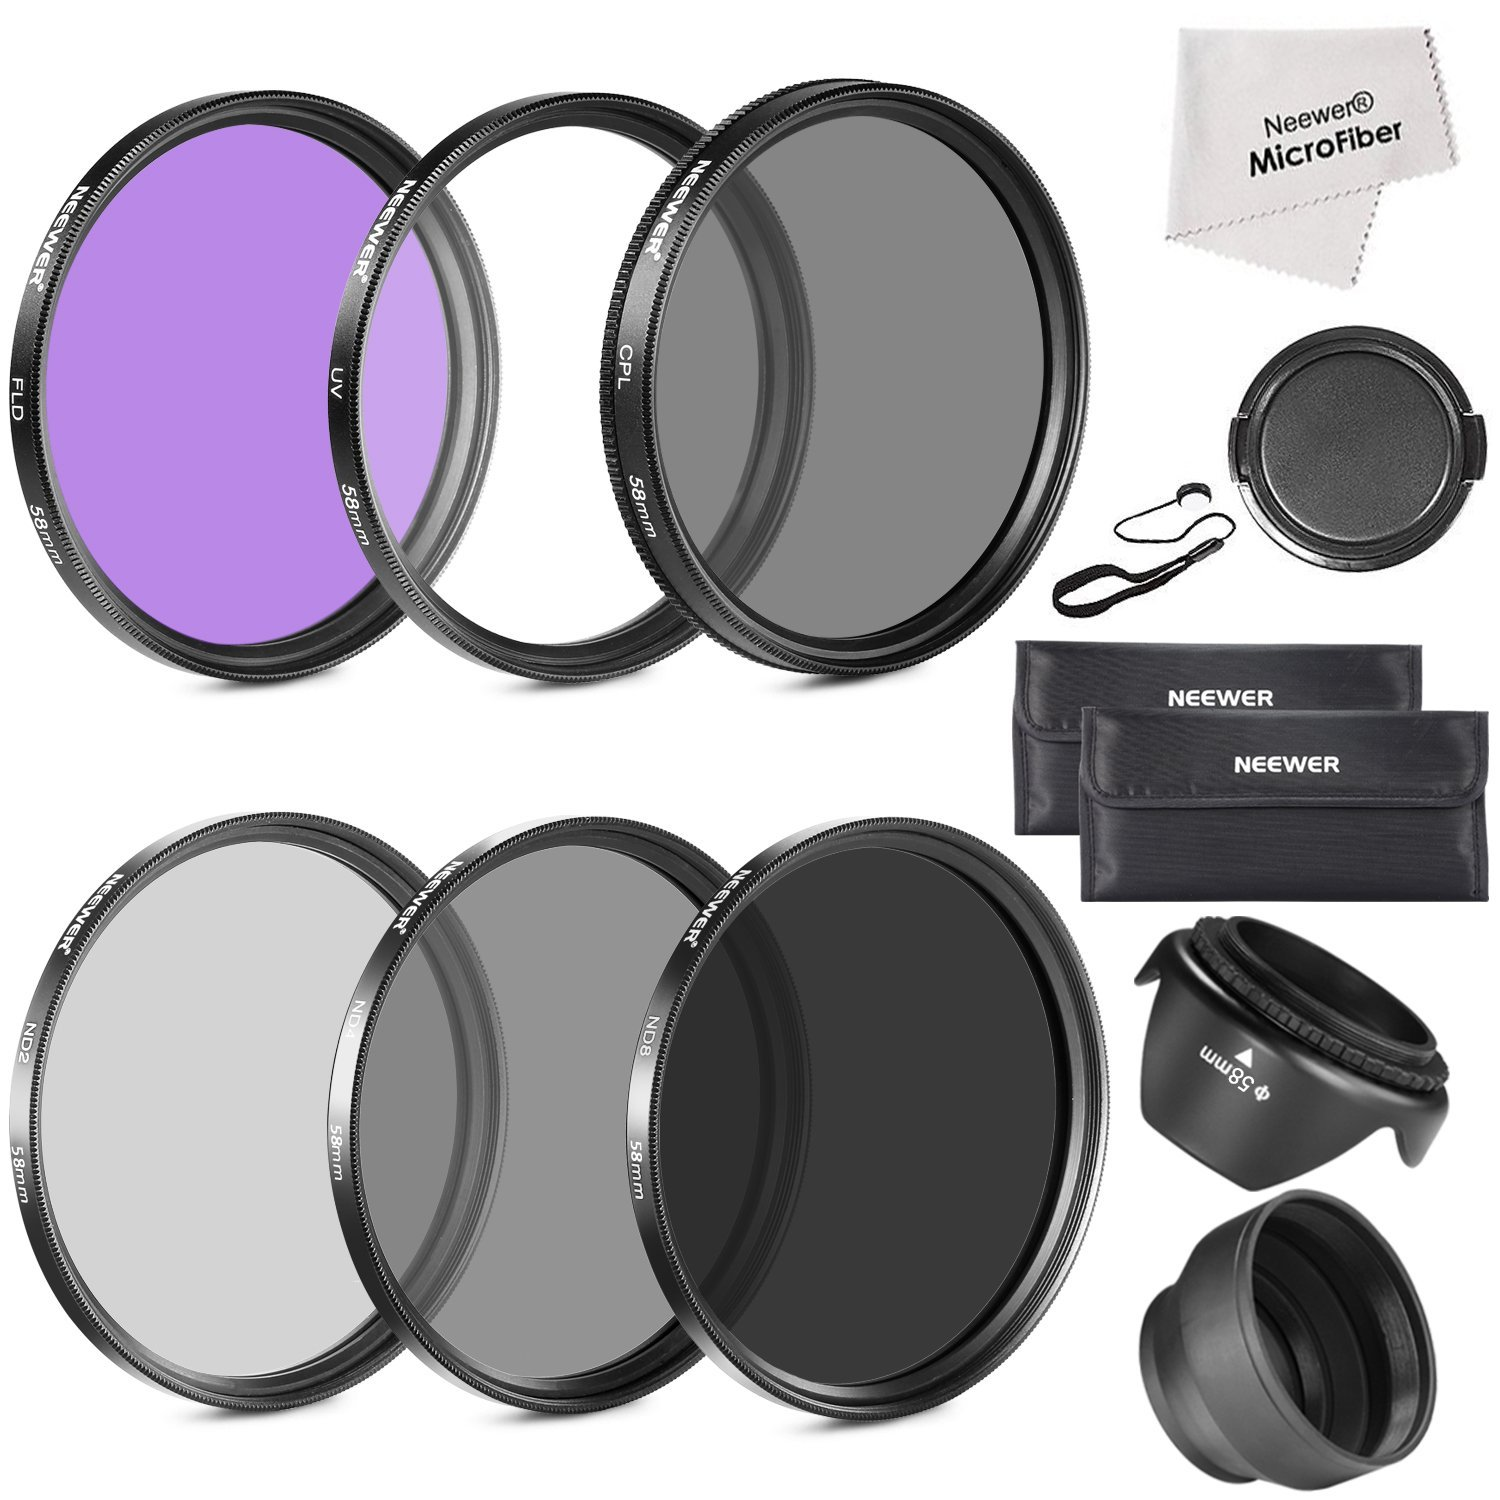 Neewer 58MM Lens Filter Accessory Kit (UV, CPL, FLD) for